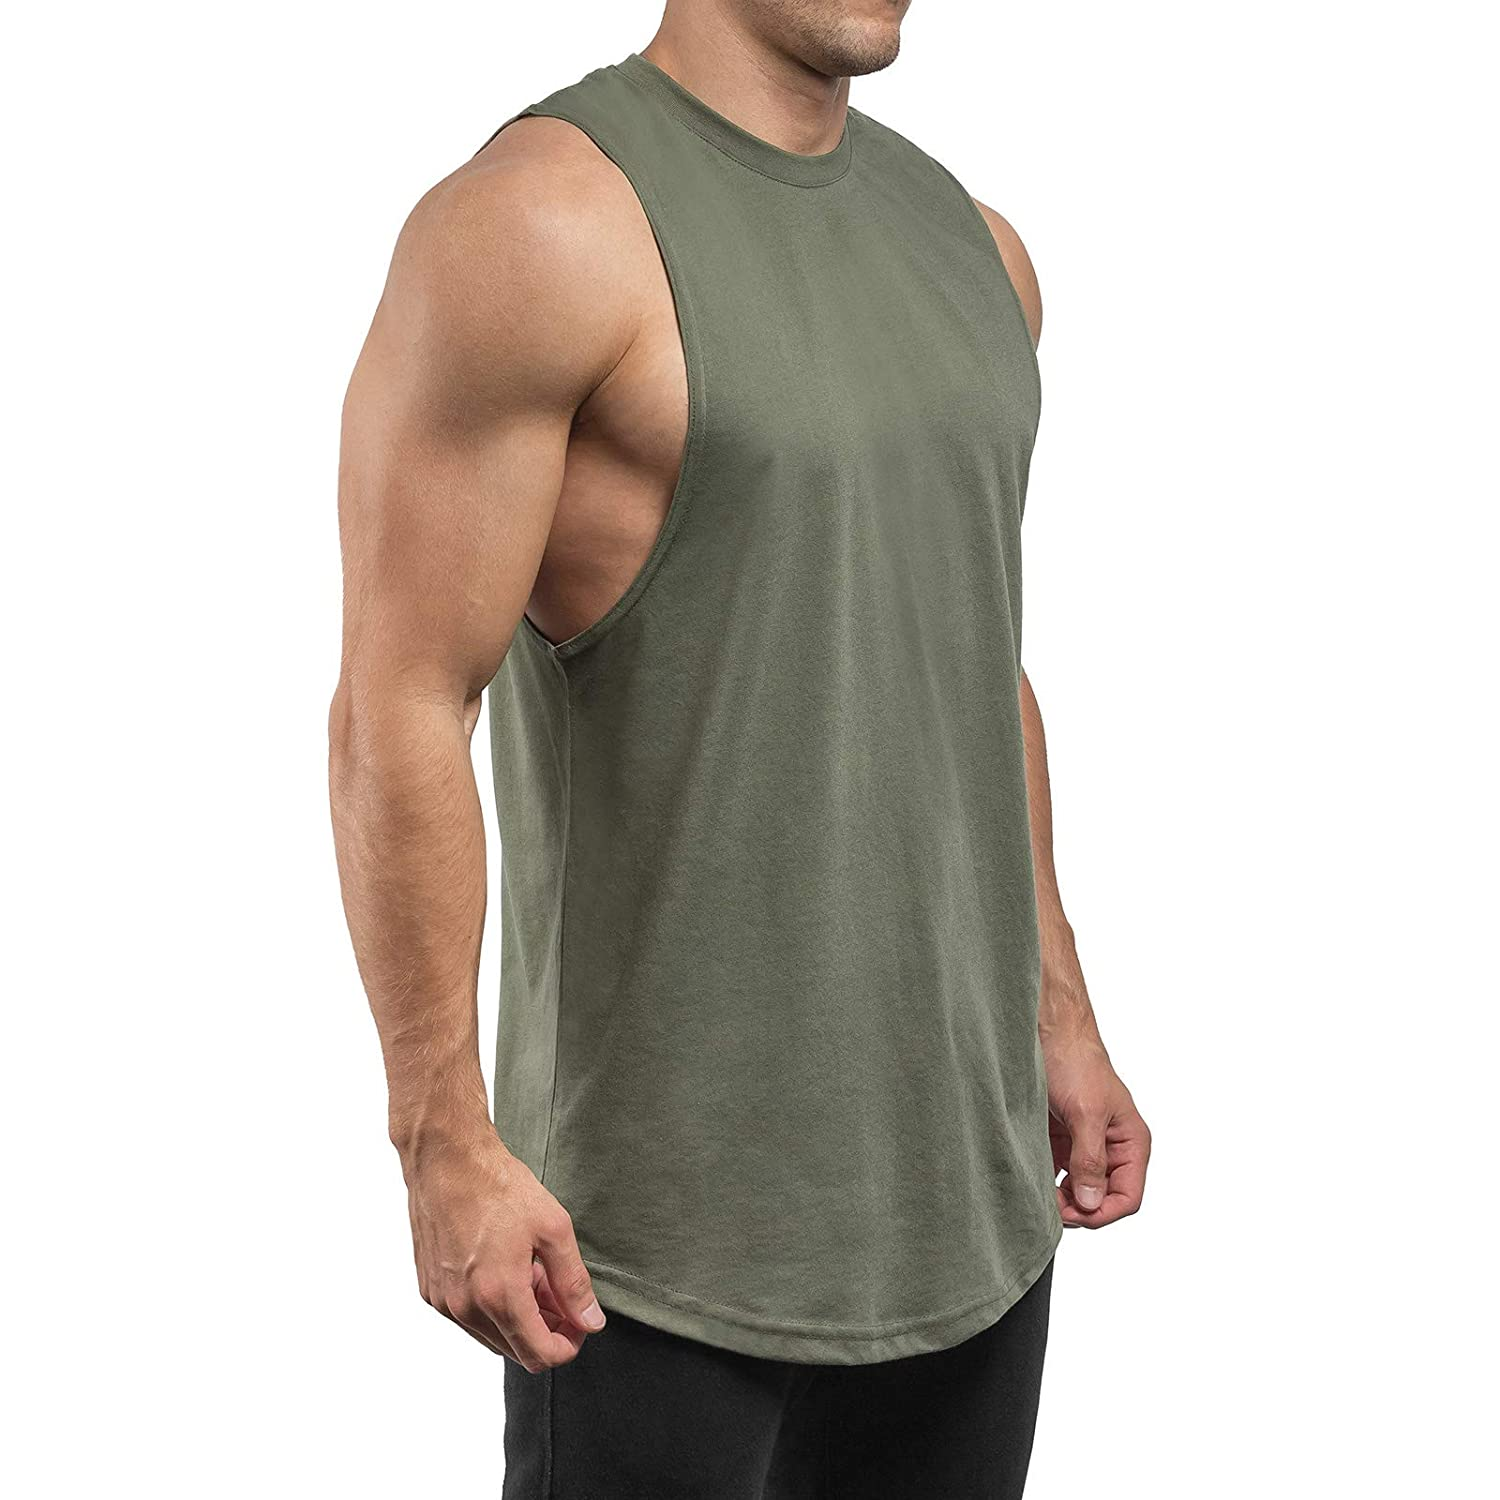 Sixlab Round Cut Off Tank Top Muskelshirt Gym Fitness